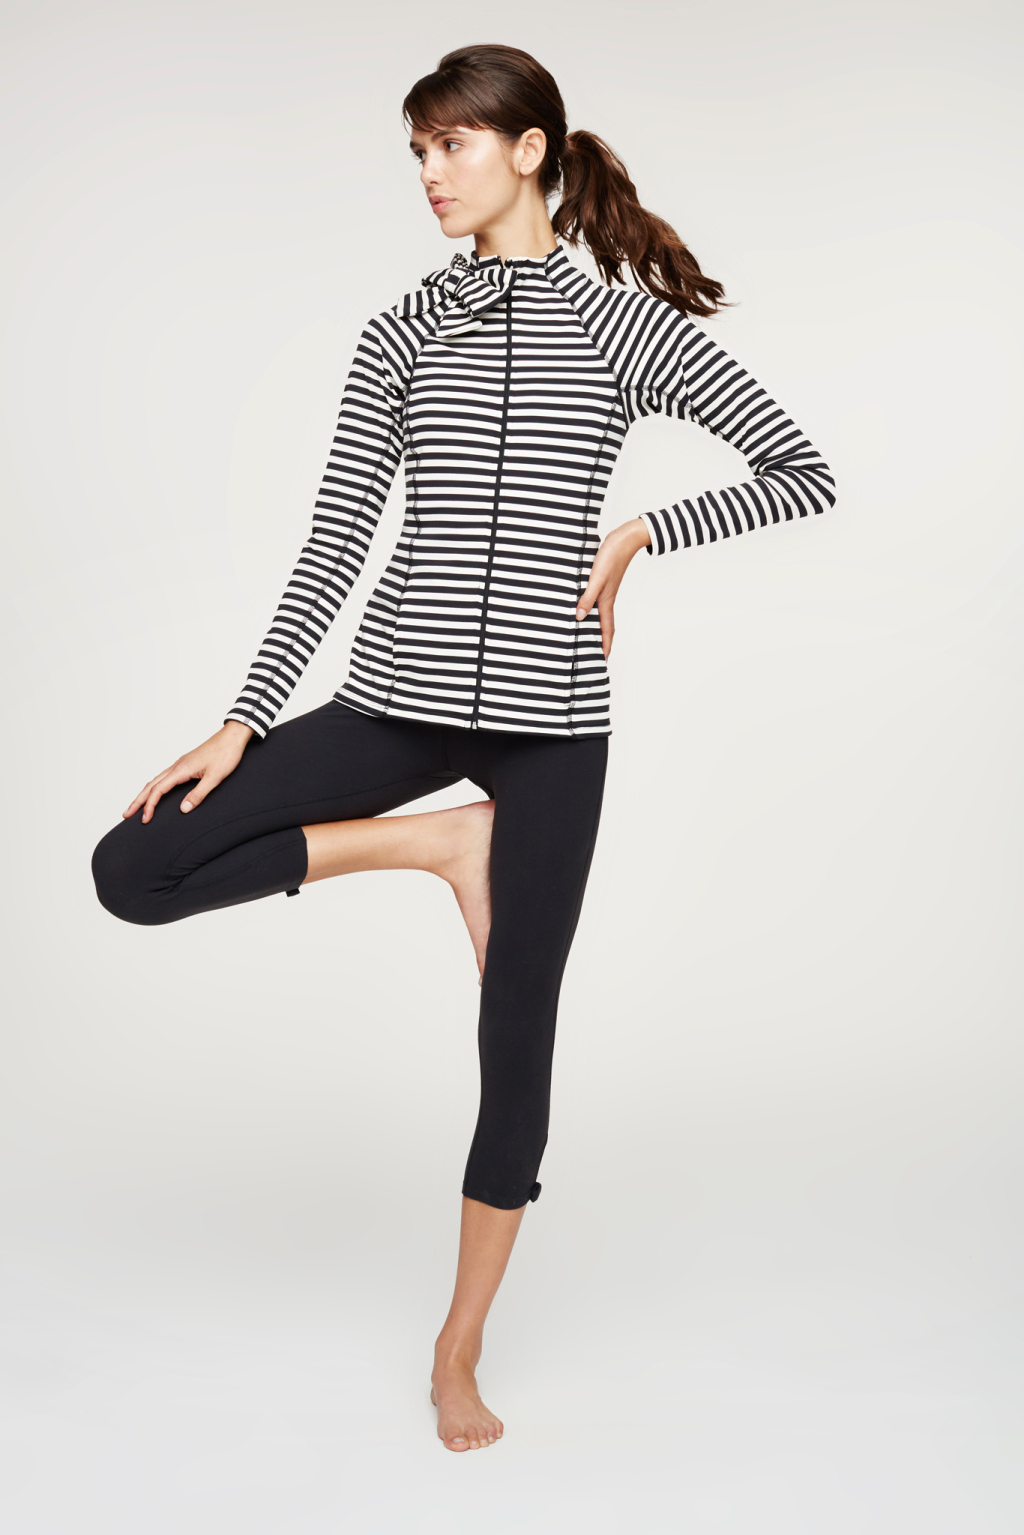 This Is How Kate Spade Does Yoga Gear